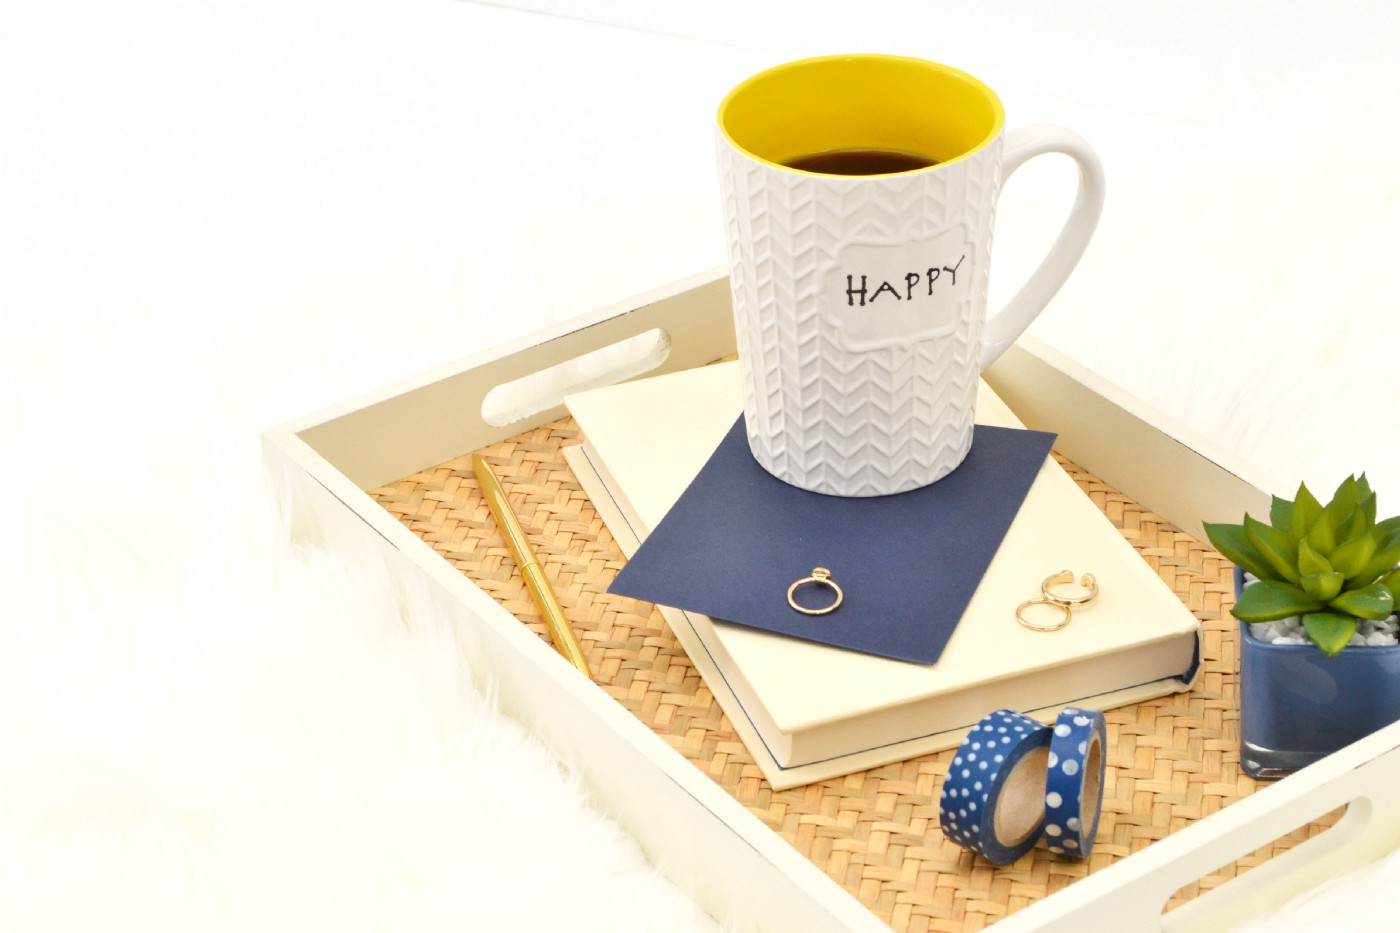 """A book with washi tape, wedding rings and a """"happy"""" mug in a tray."""